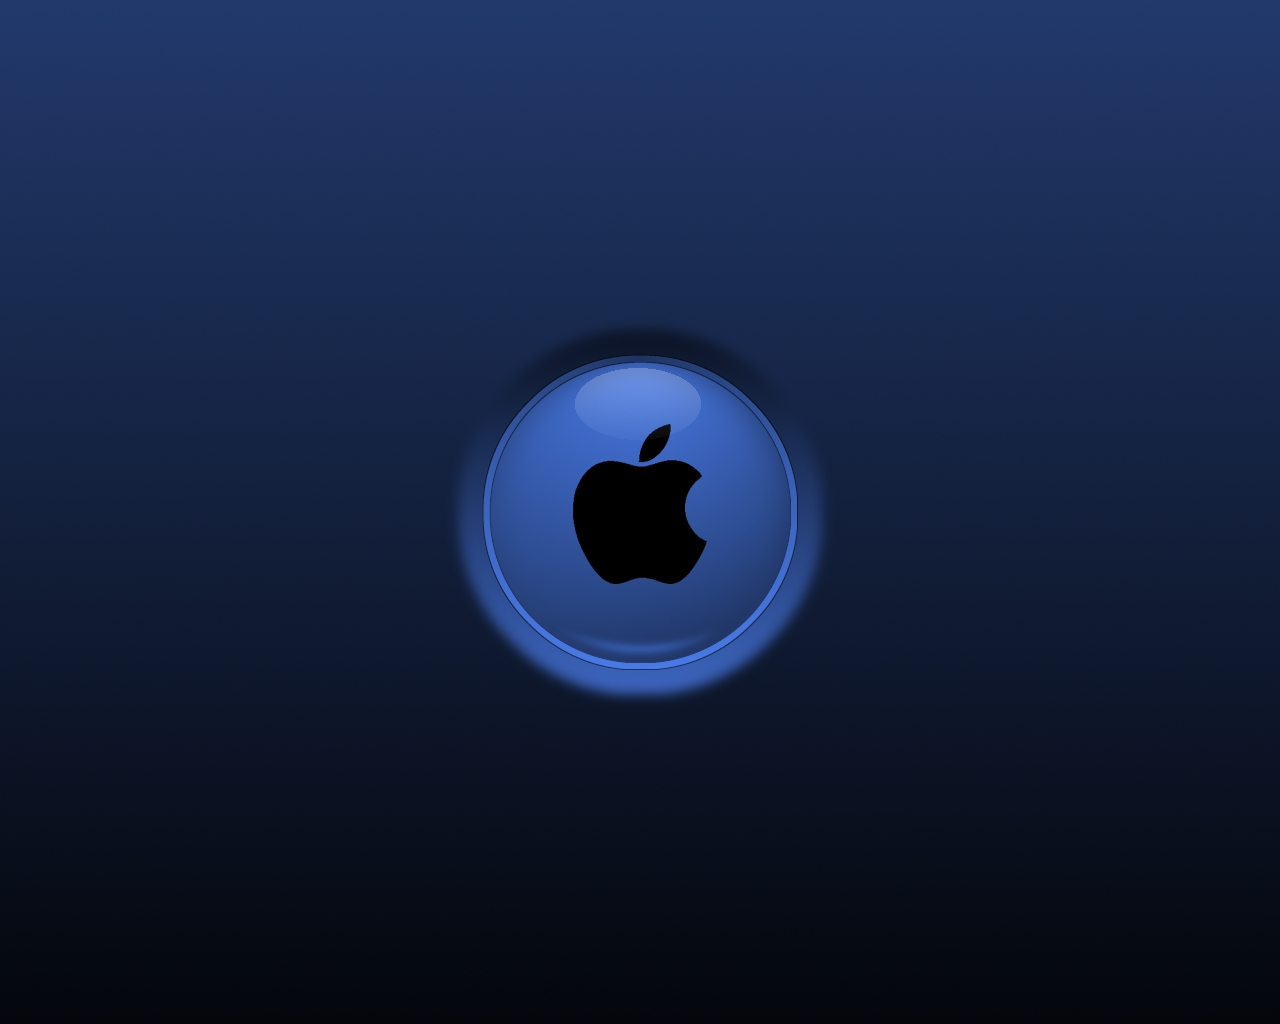 Apple Desktop Wallpaper Blue HD wallpaper background 1280x1024